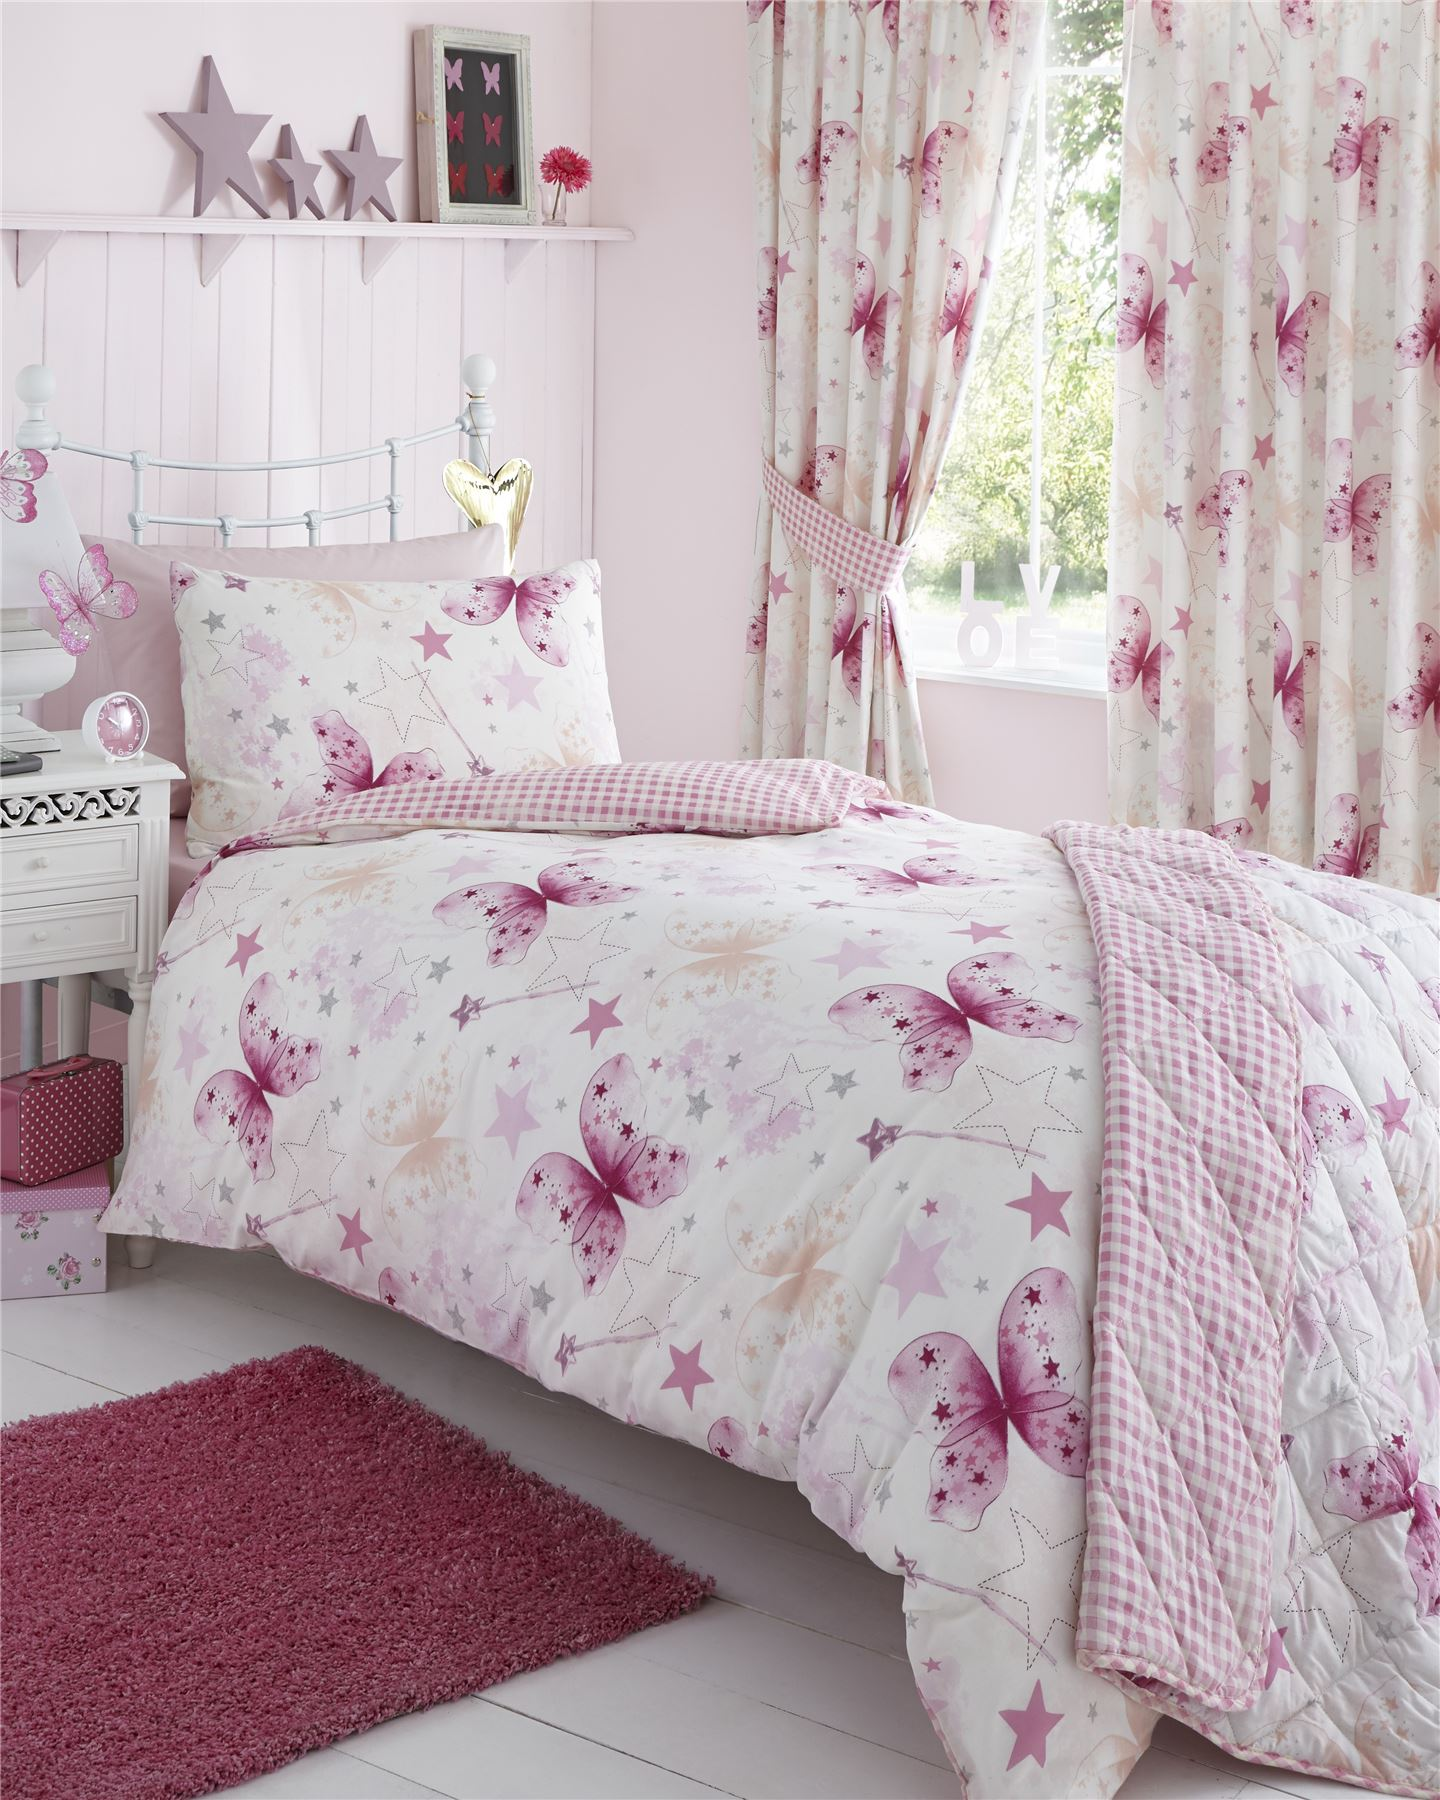 Complete Bedding Sets With Matching Curtains